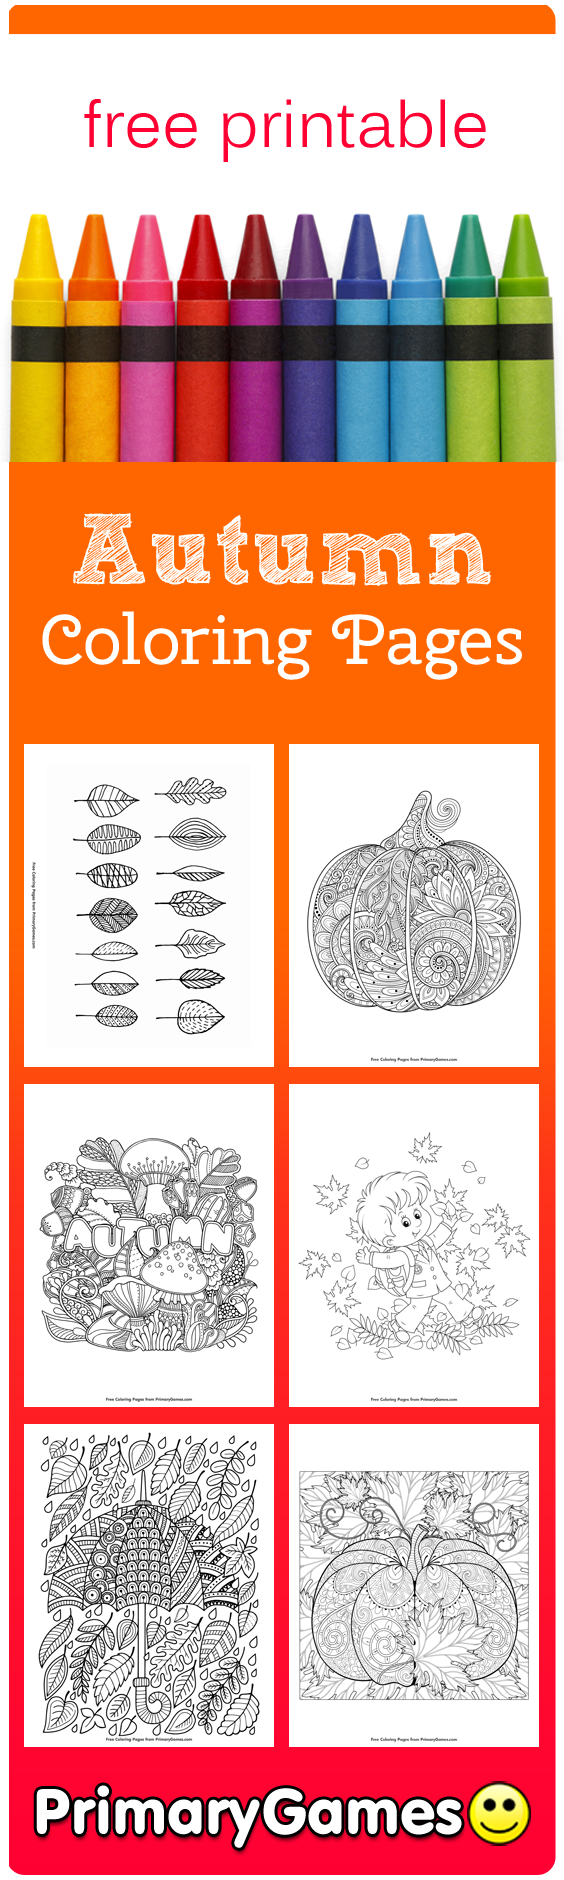 fall coloring pages primarygames play free online games